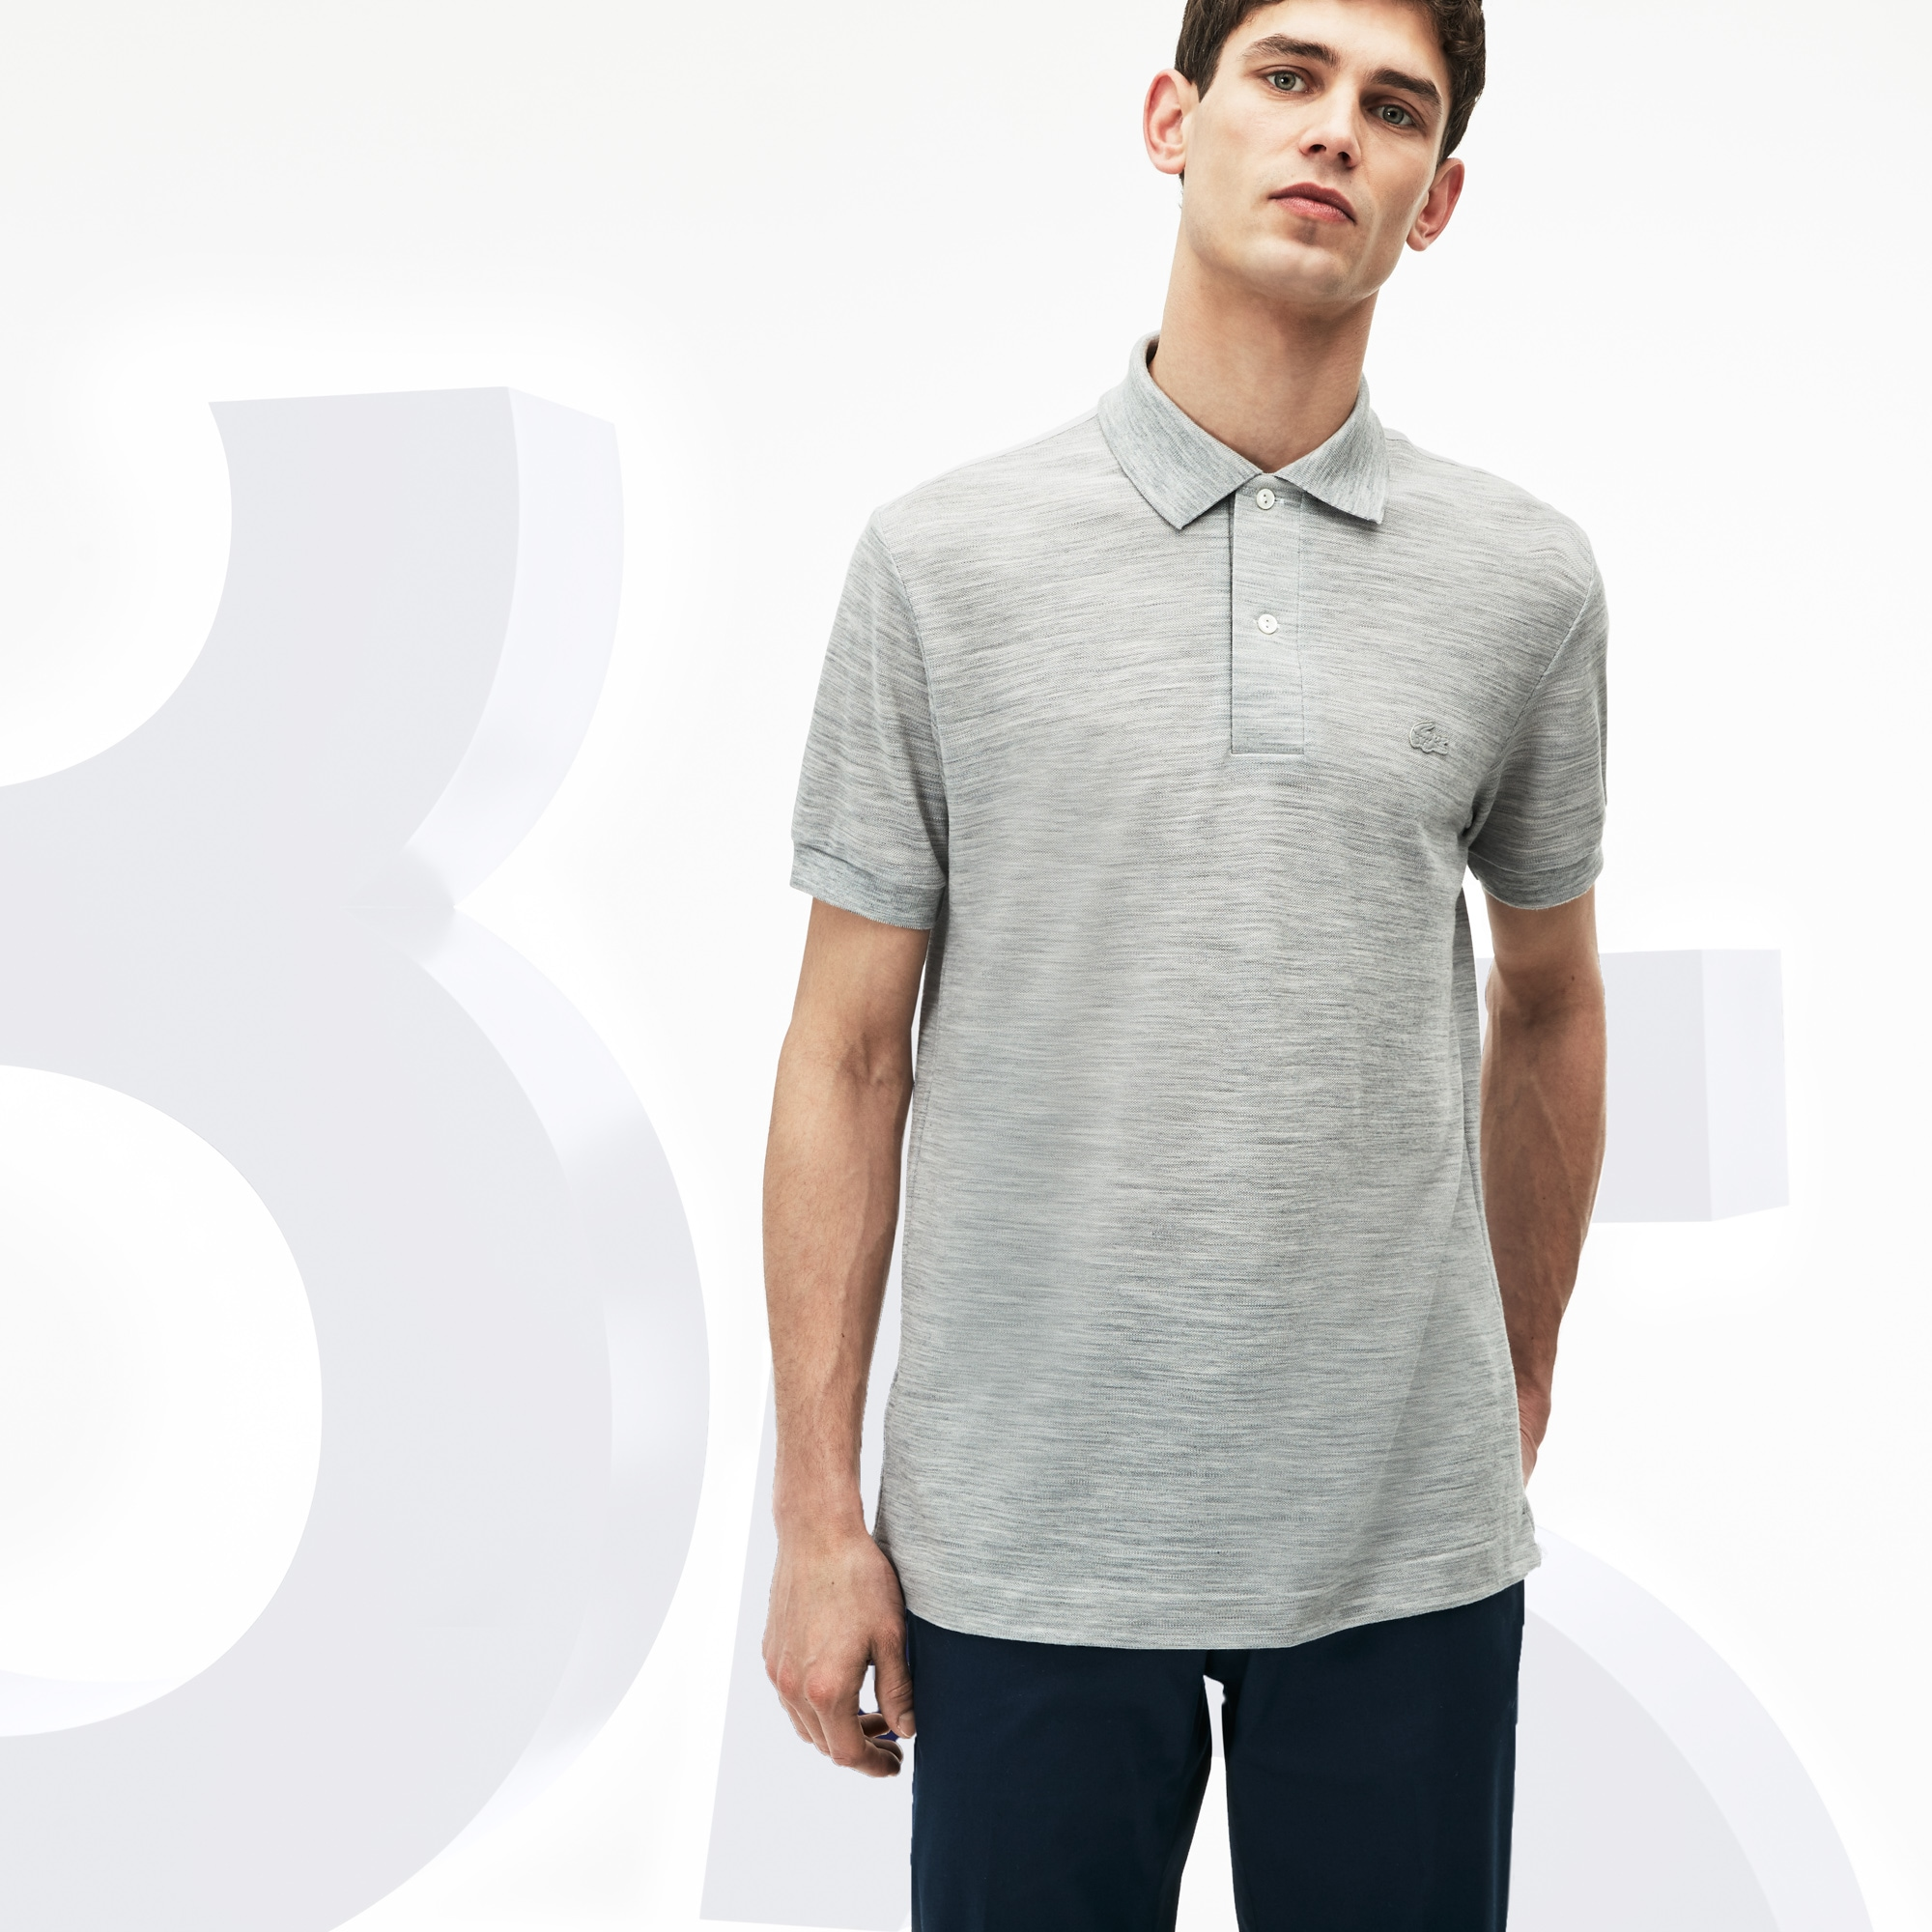 Men's Lacoste 85th Anniversary L.12.12 Limited Edition Wool Piqué Polo